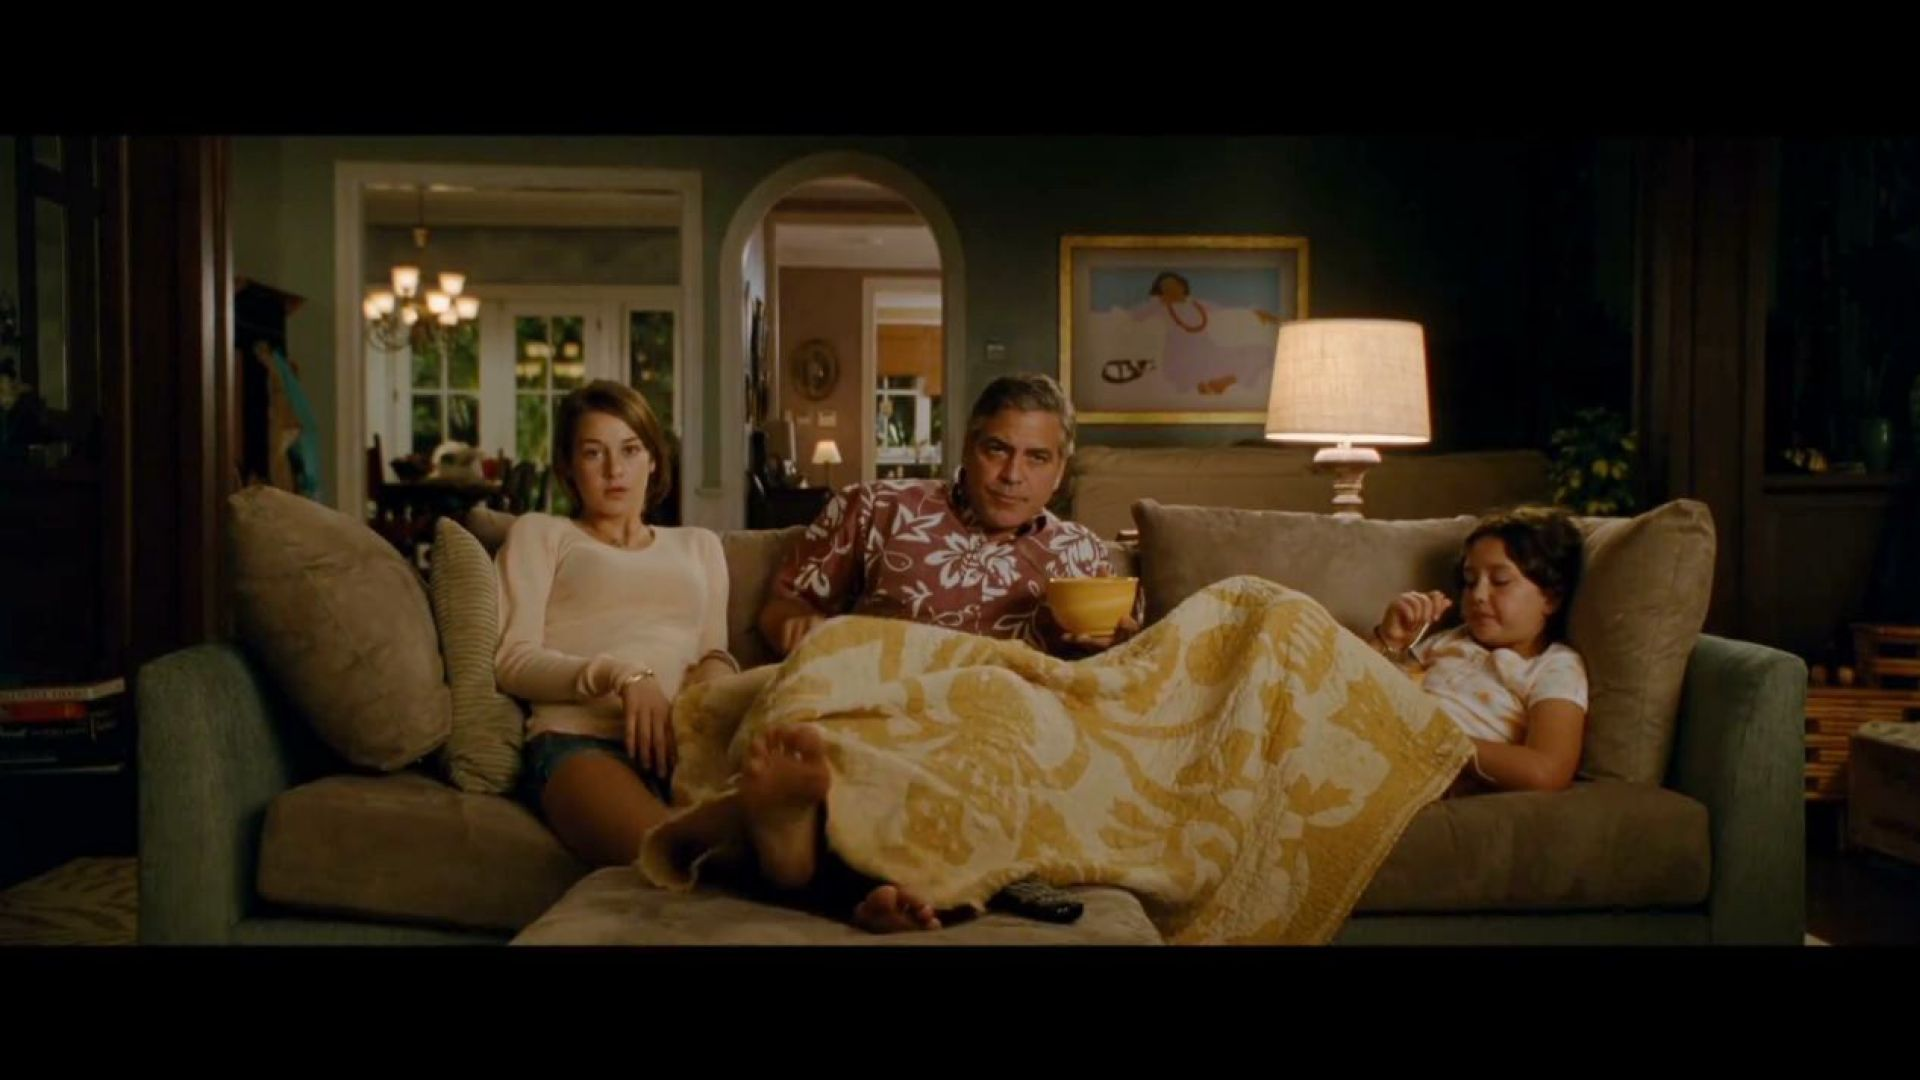 George Clooney and his daughters watch March of the Penguins in The Descendants